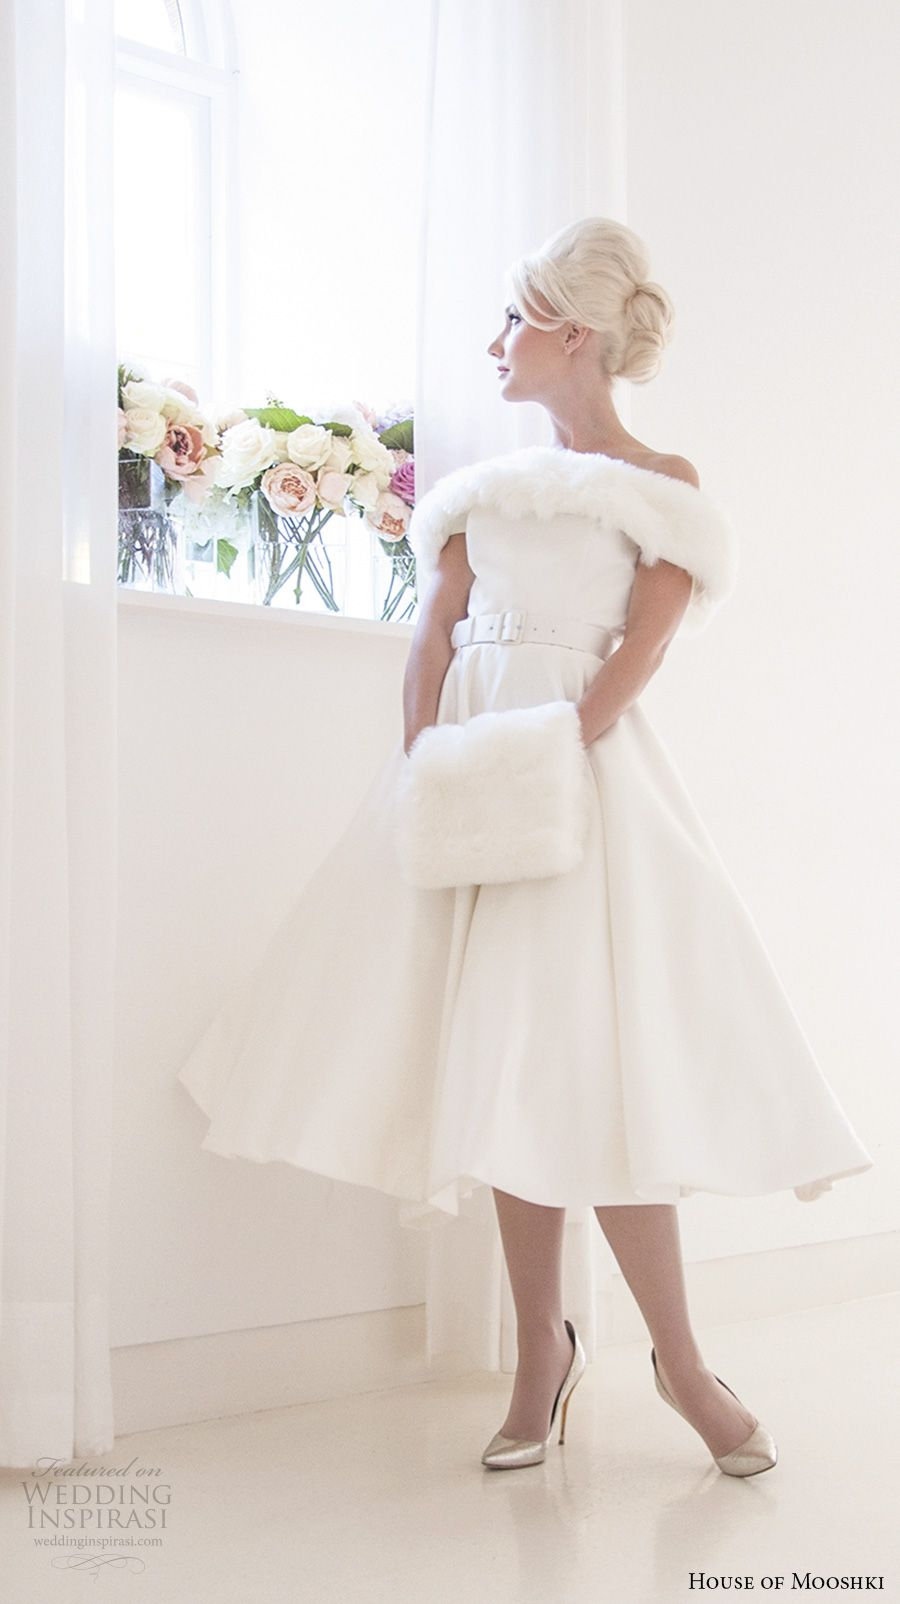 Off the shoulder tea length wedding dress  House of Mooshki  Wedding Dresses  Winter shorts Short wedding